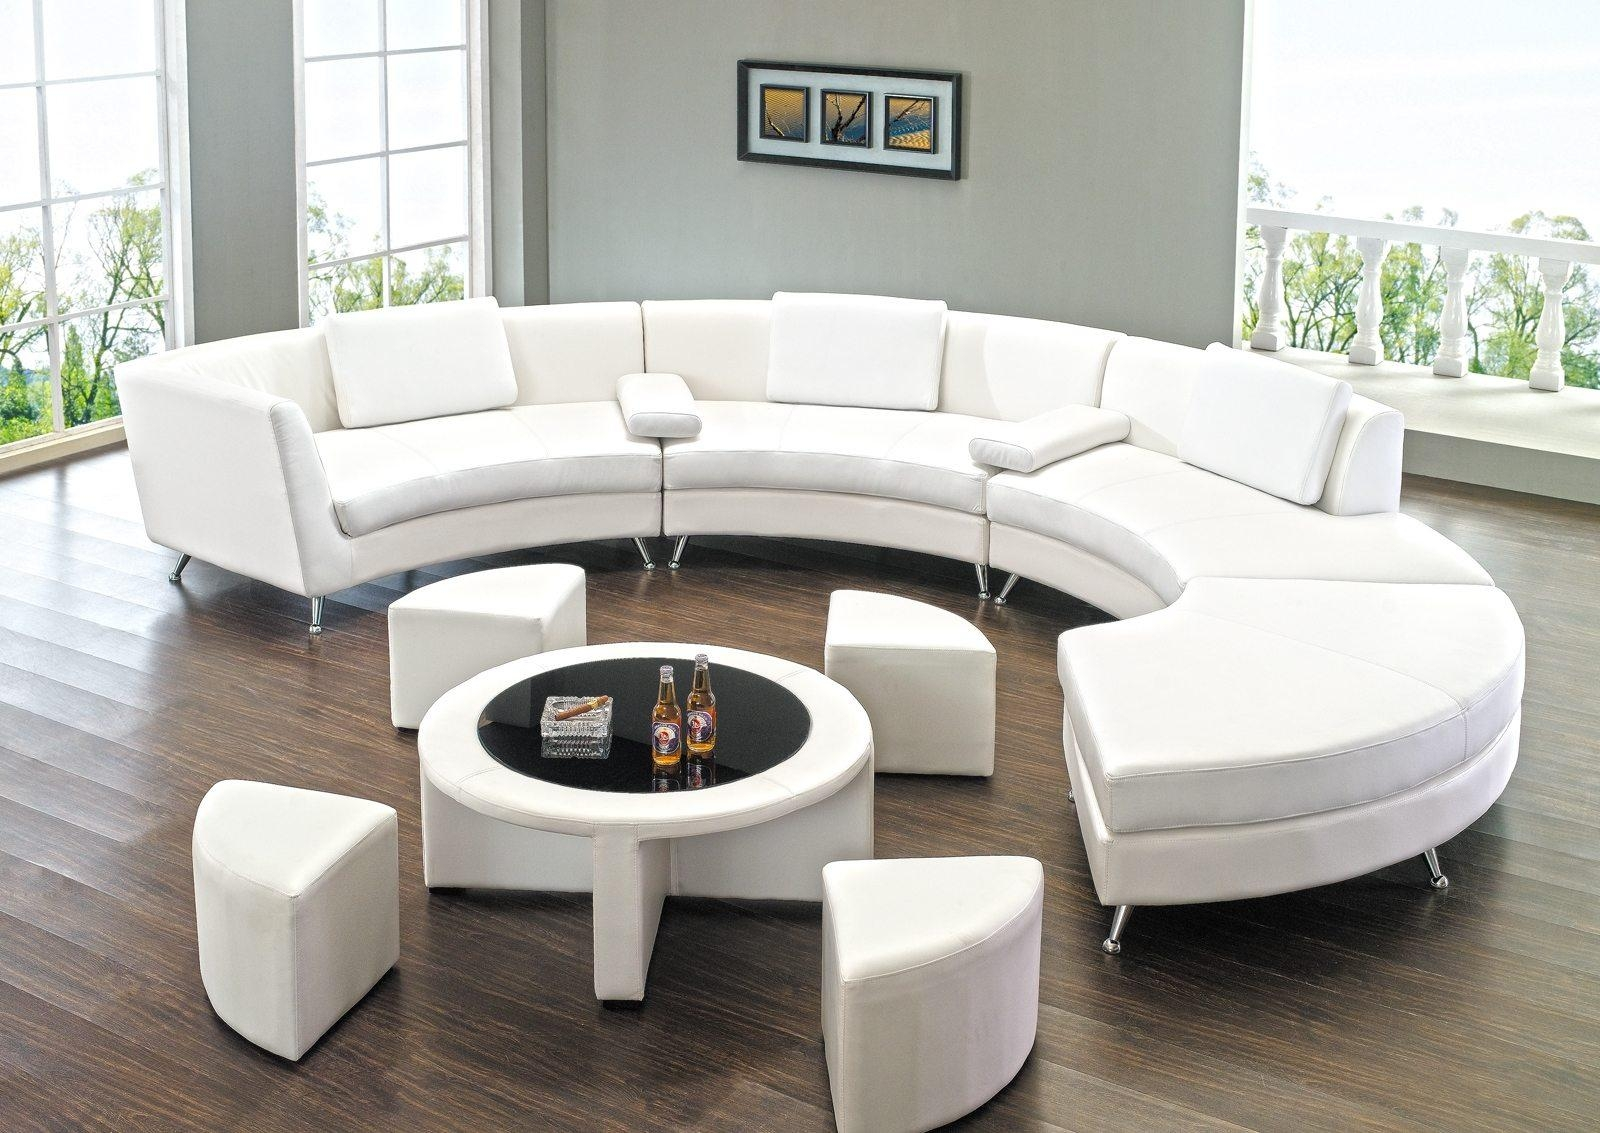 Remarkable Round Sofa With Living Room Curved Couches Round Sofa With Regard To Round Sofas (View 17 of 20)